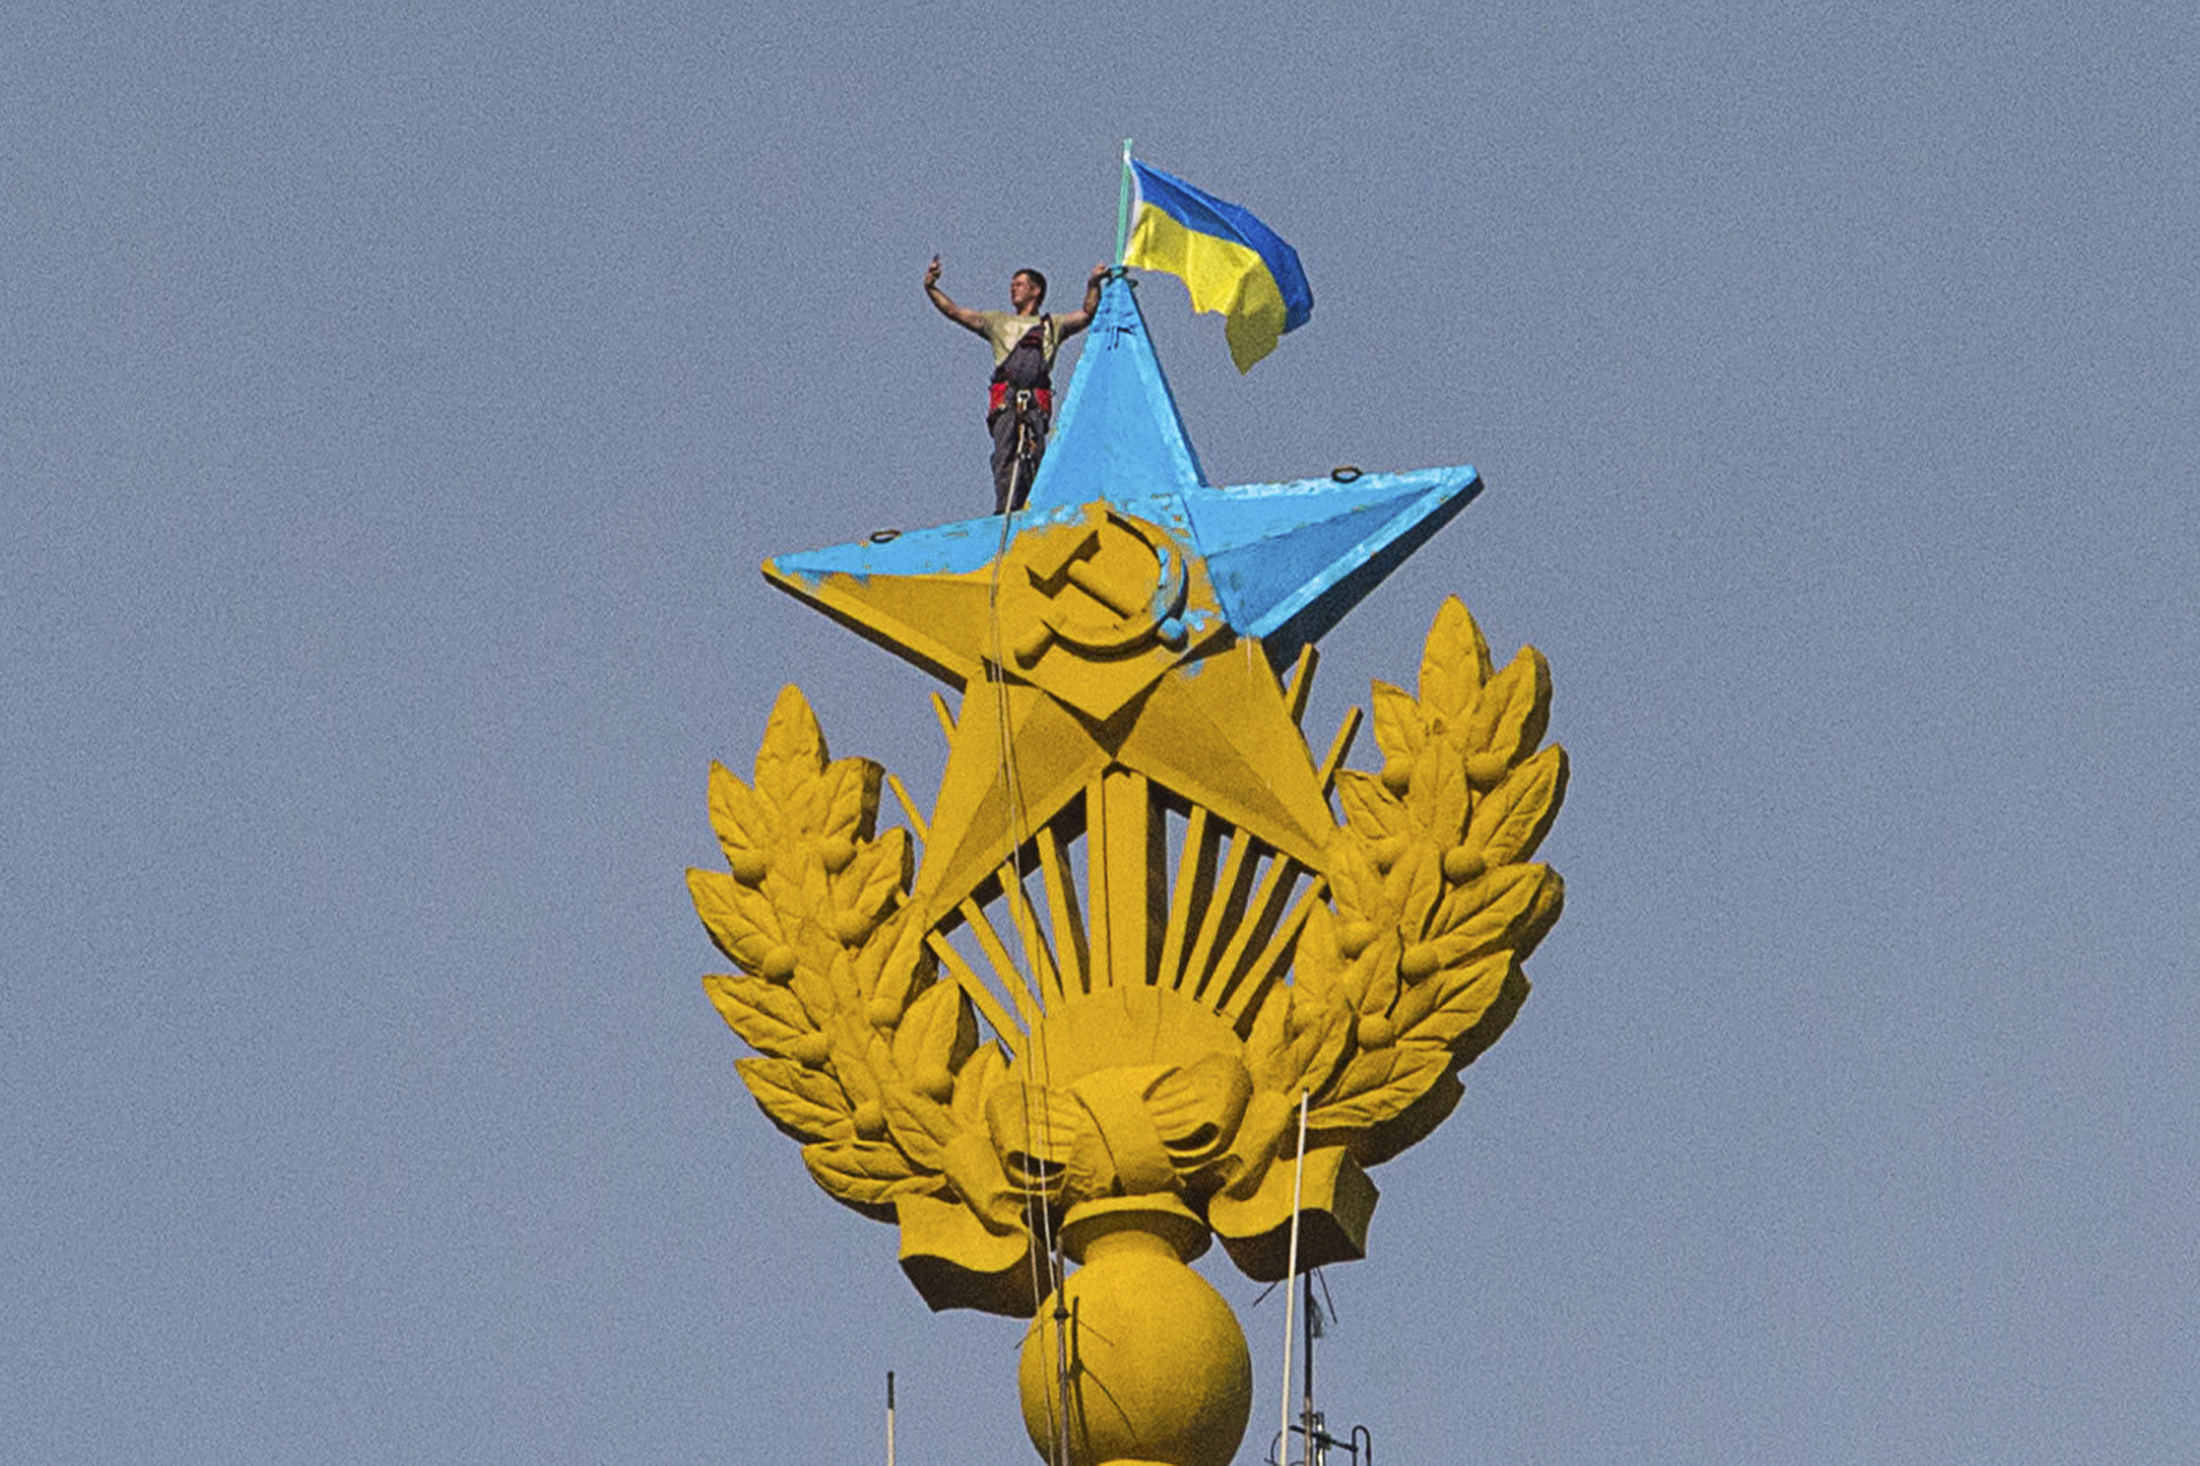 A man takes a 'selfie' as he stands with a Ukrainian flag on a Soviet-style star atop the spire of a building in Moscow.